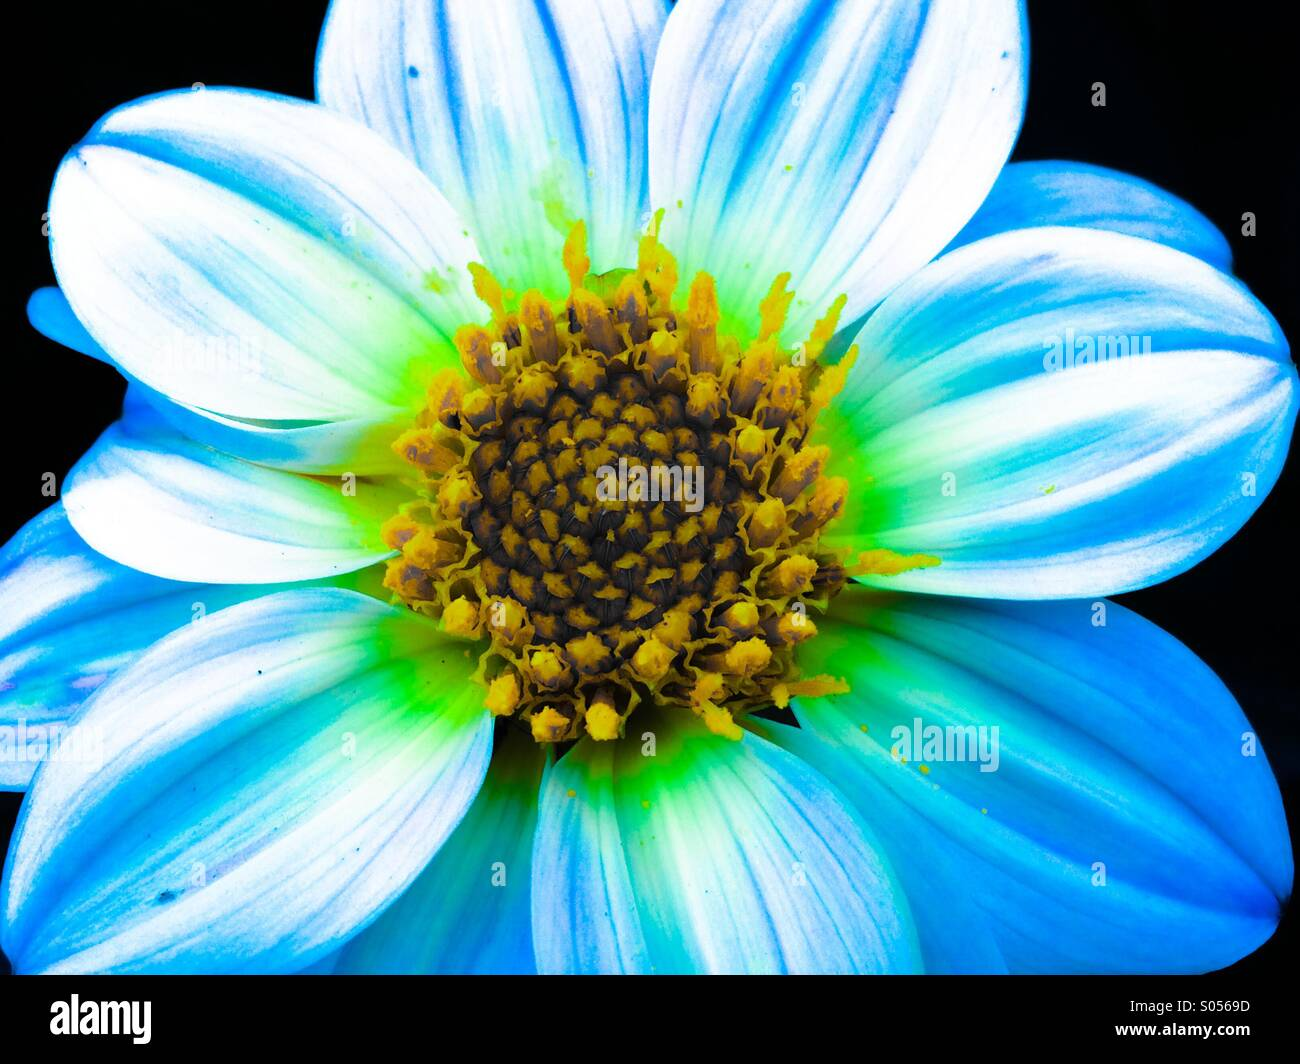 Blue and green flower with yellow centre Stock Photo